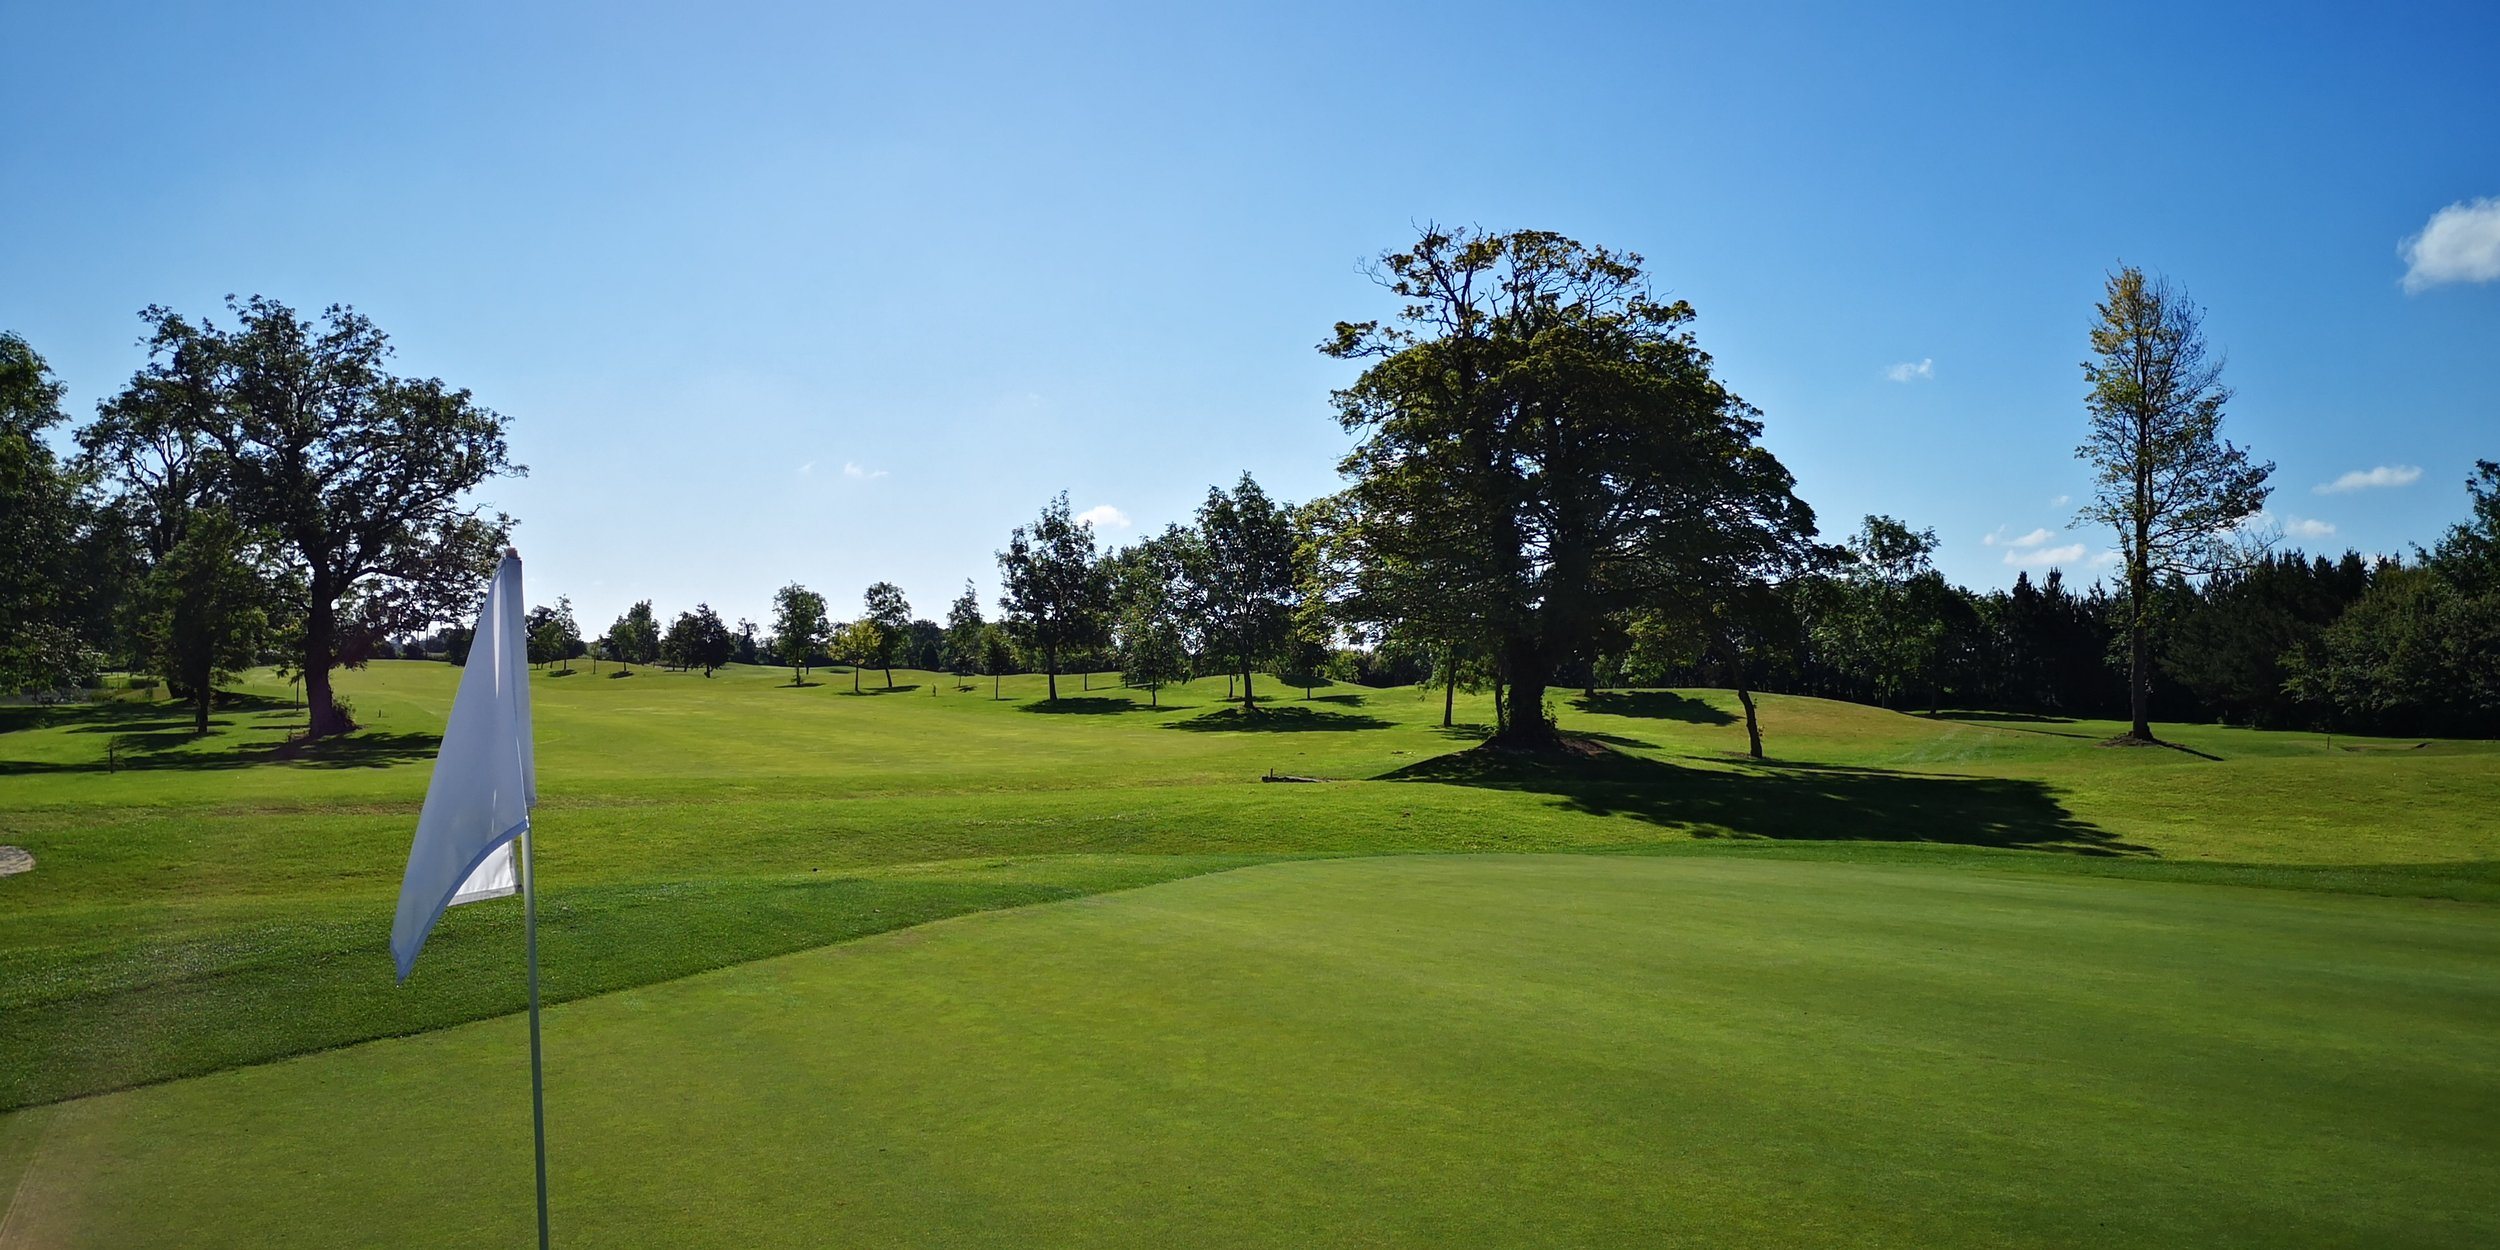 PLAY ALL YEAR ROUND - Professionally designed and managed greens and our temperate climate make our courses playable every day of the year